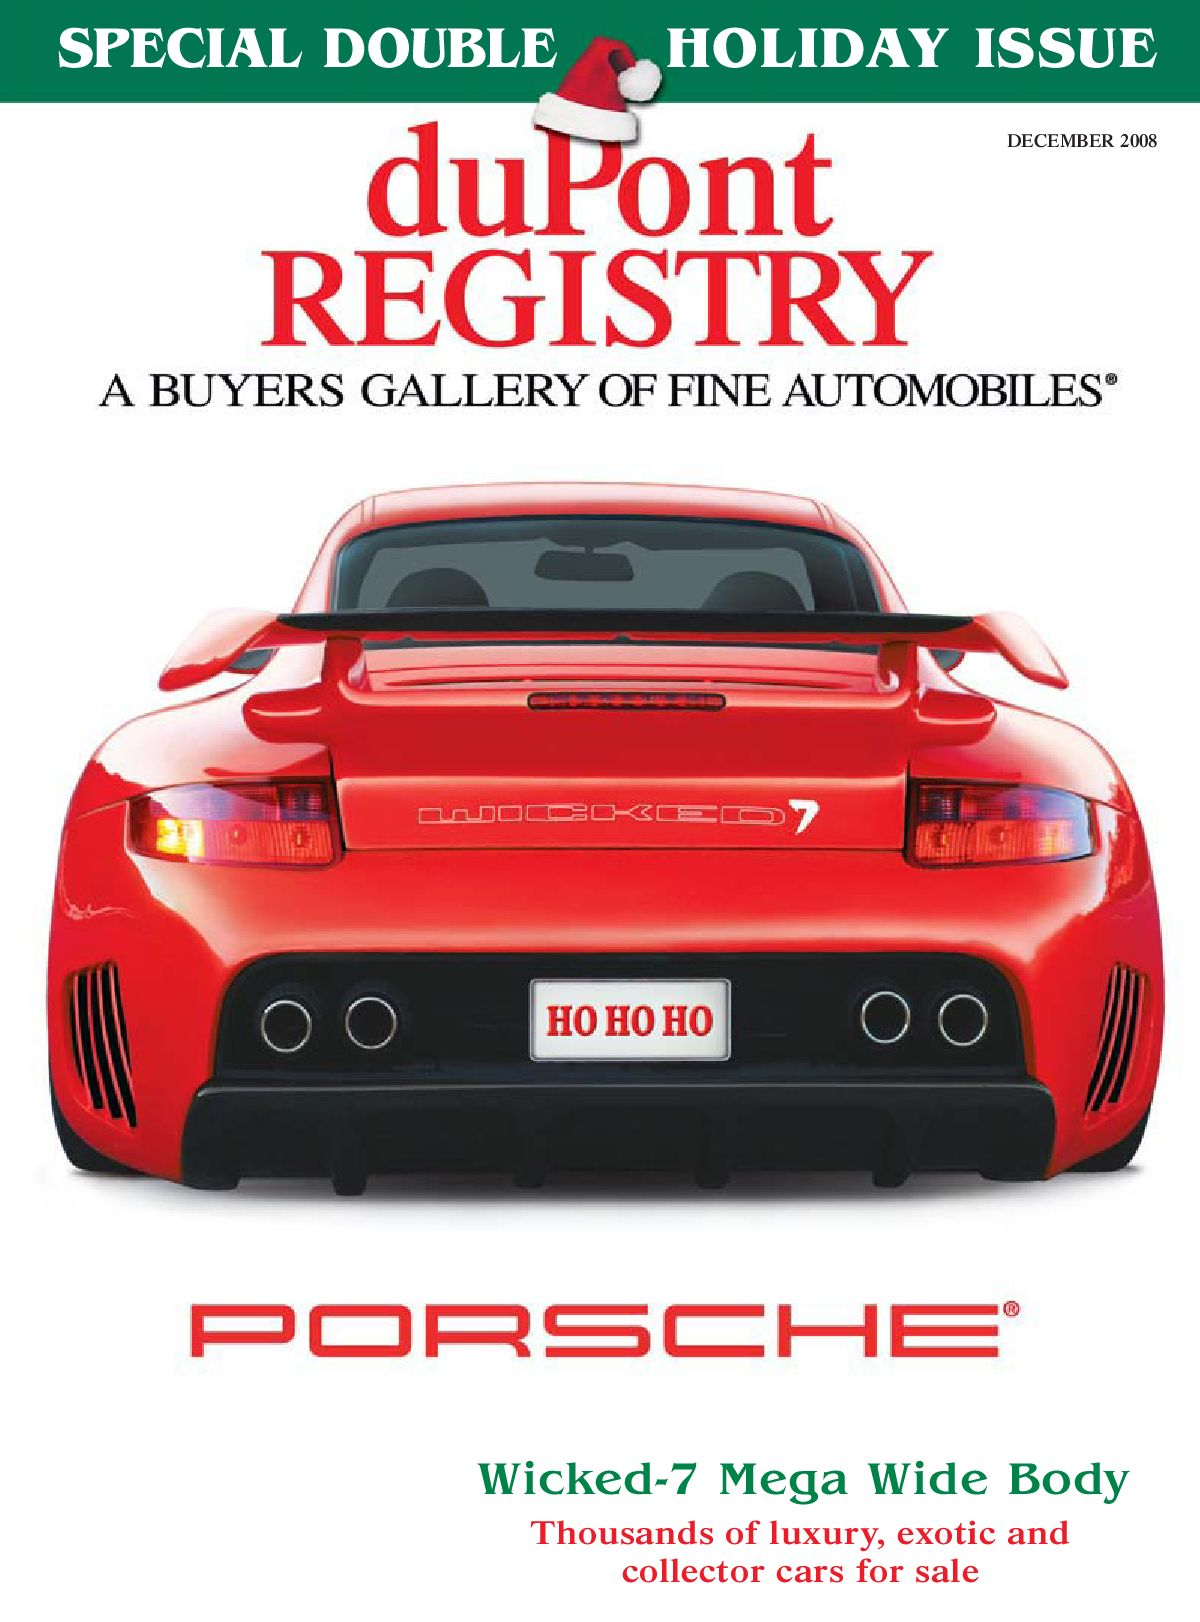 duPontREGISTRY Autos December 2008 by duPont REGISTRY issuu